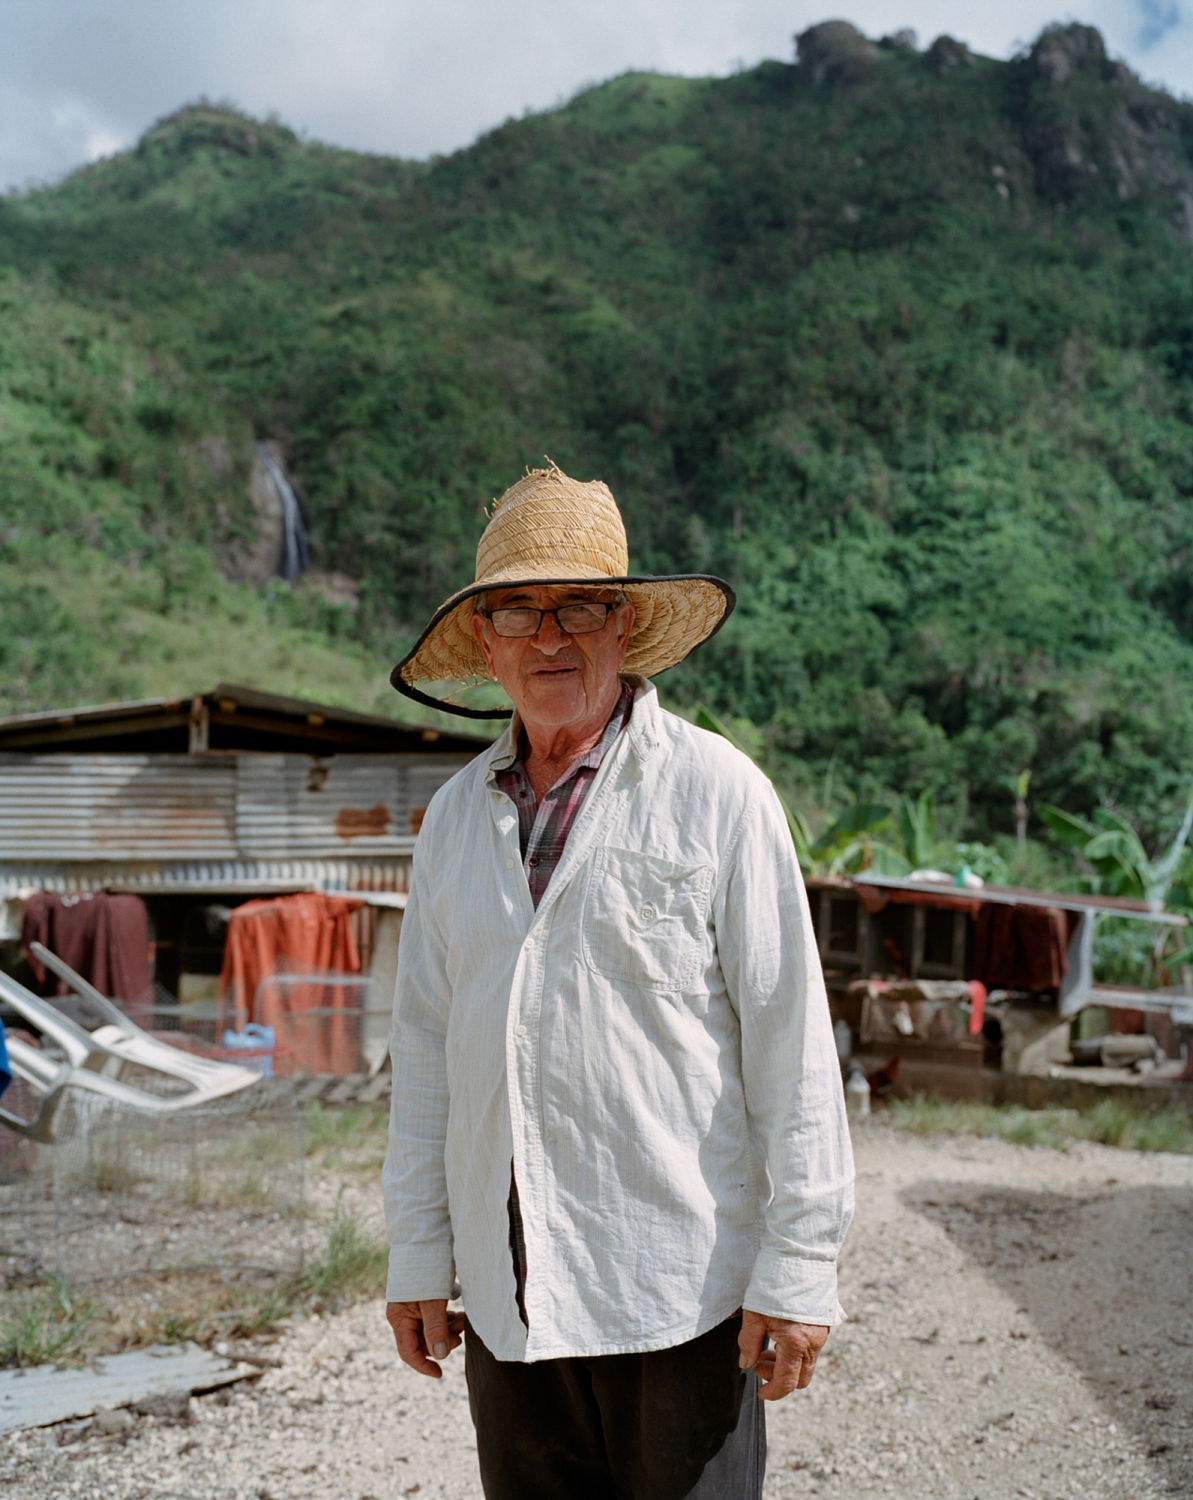 Ñingo Marrero, my grandfather Horacio's cousin, stands for a portrait in the barrio of Dajao. After the storm, he and many others bathed in the waterfall and river behind the property until the water was restored to their homes. When I was a child, my grandfather would take us on hikes around the barrio and tell us tales about the chupacabra, which he claimed killed his roosters, and how it lived in these woods. Villalba, Puerto Rico, December 2017.